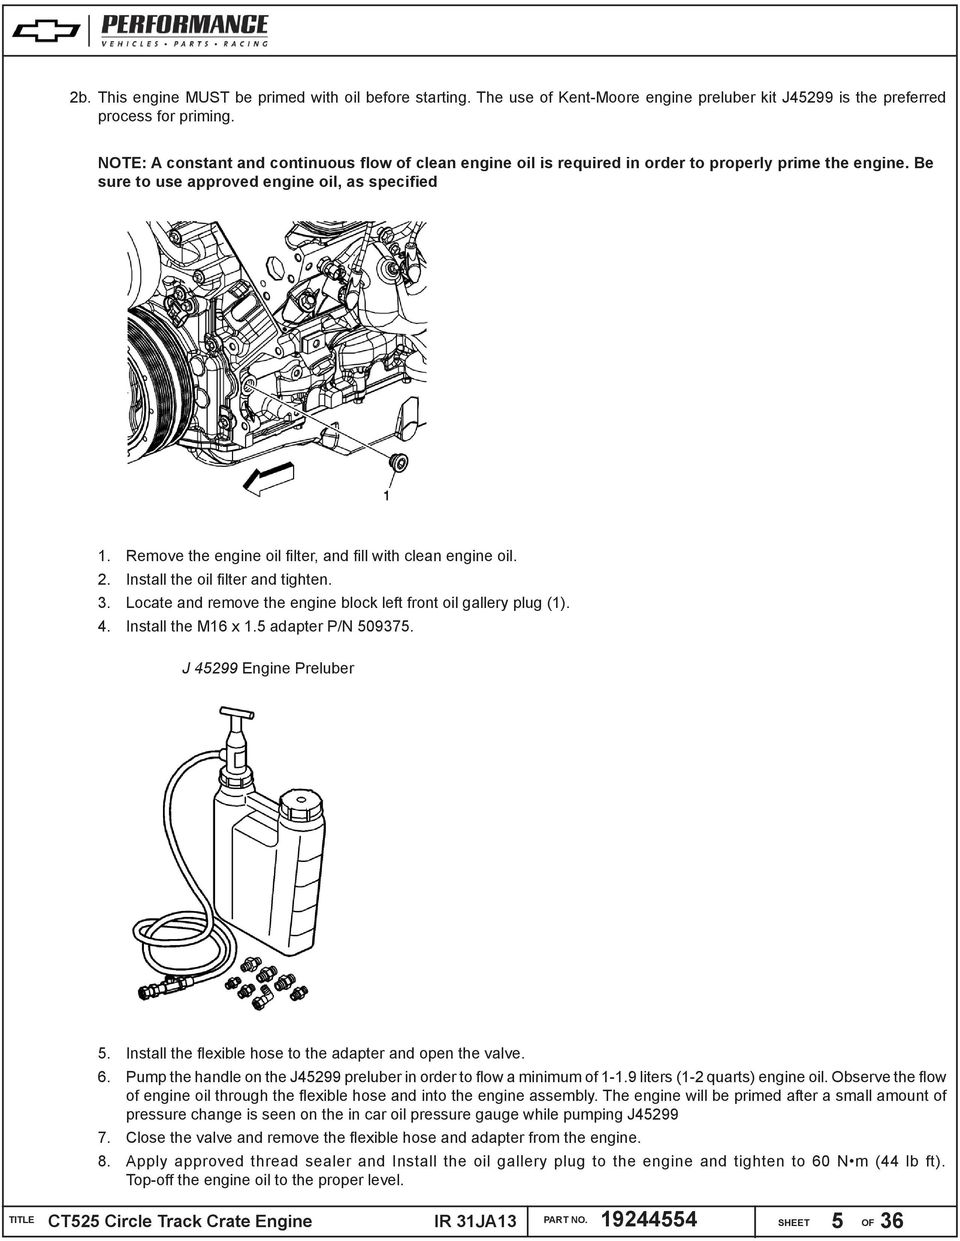 Remove the engine oil filter, and fill with clean engine oil. 2. Install the oil filter and tighten. 3. Locate and remove the engine block left front oil gallery plug (1). 4. Install the M16 x 1.